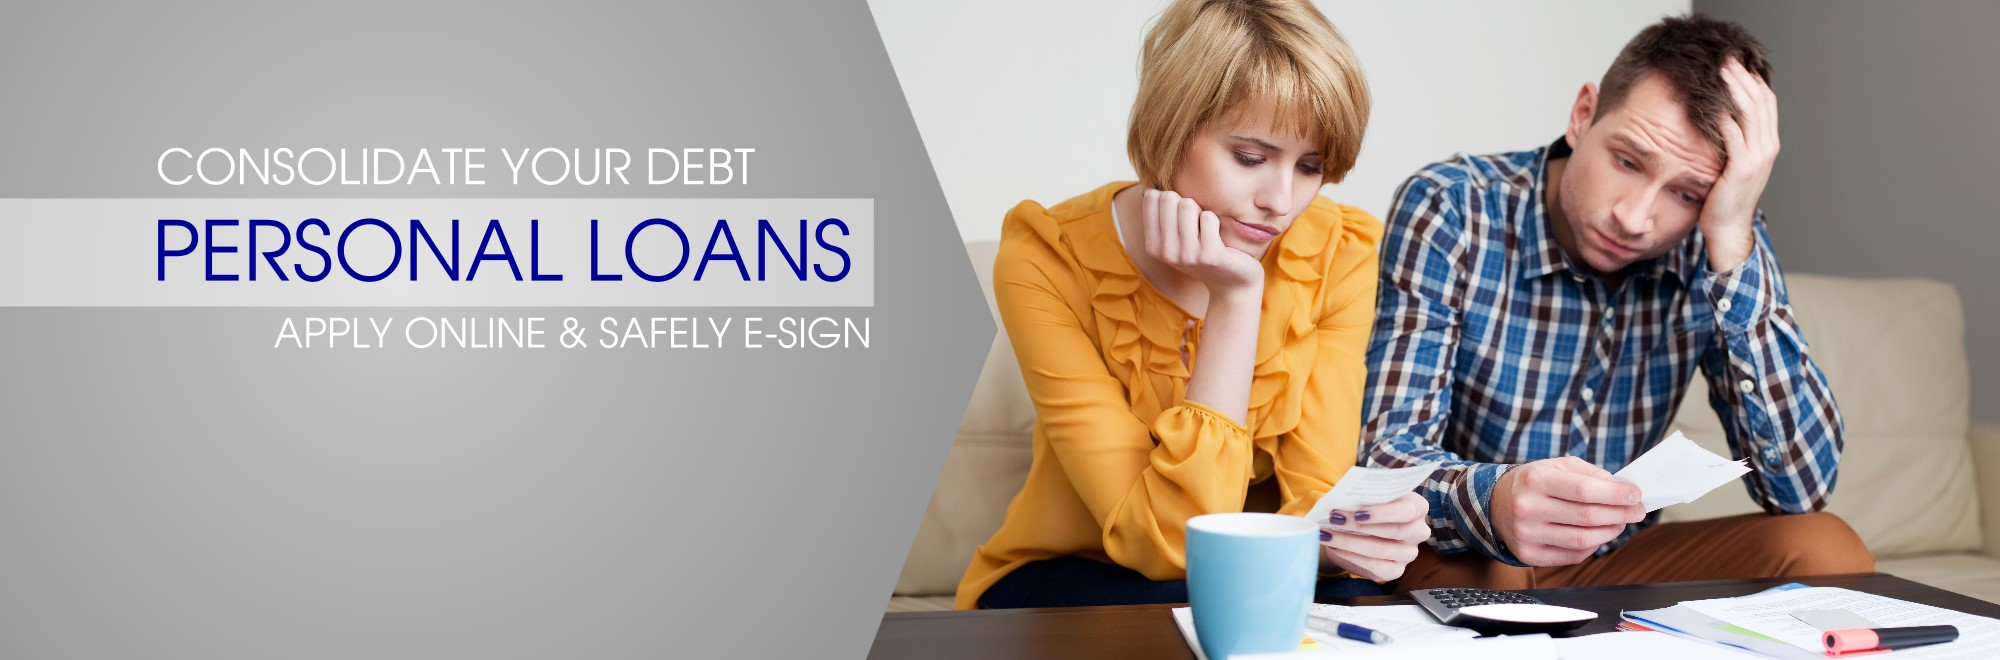 couple paying bills- consolidate debt with a personal loan, apply online and safely e-sign